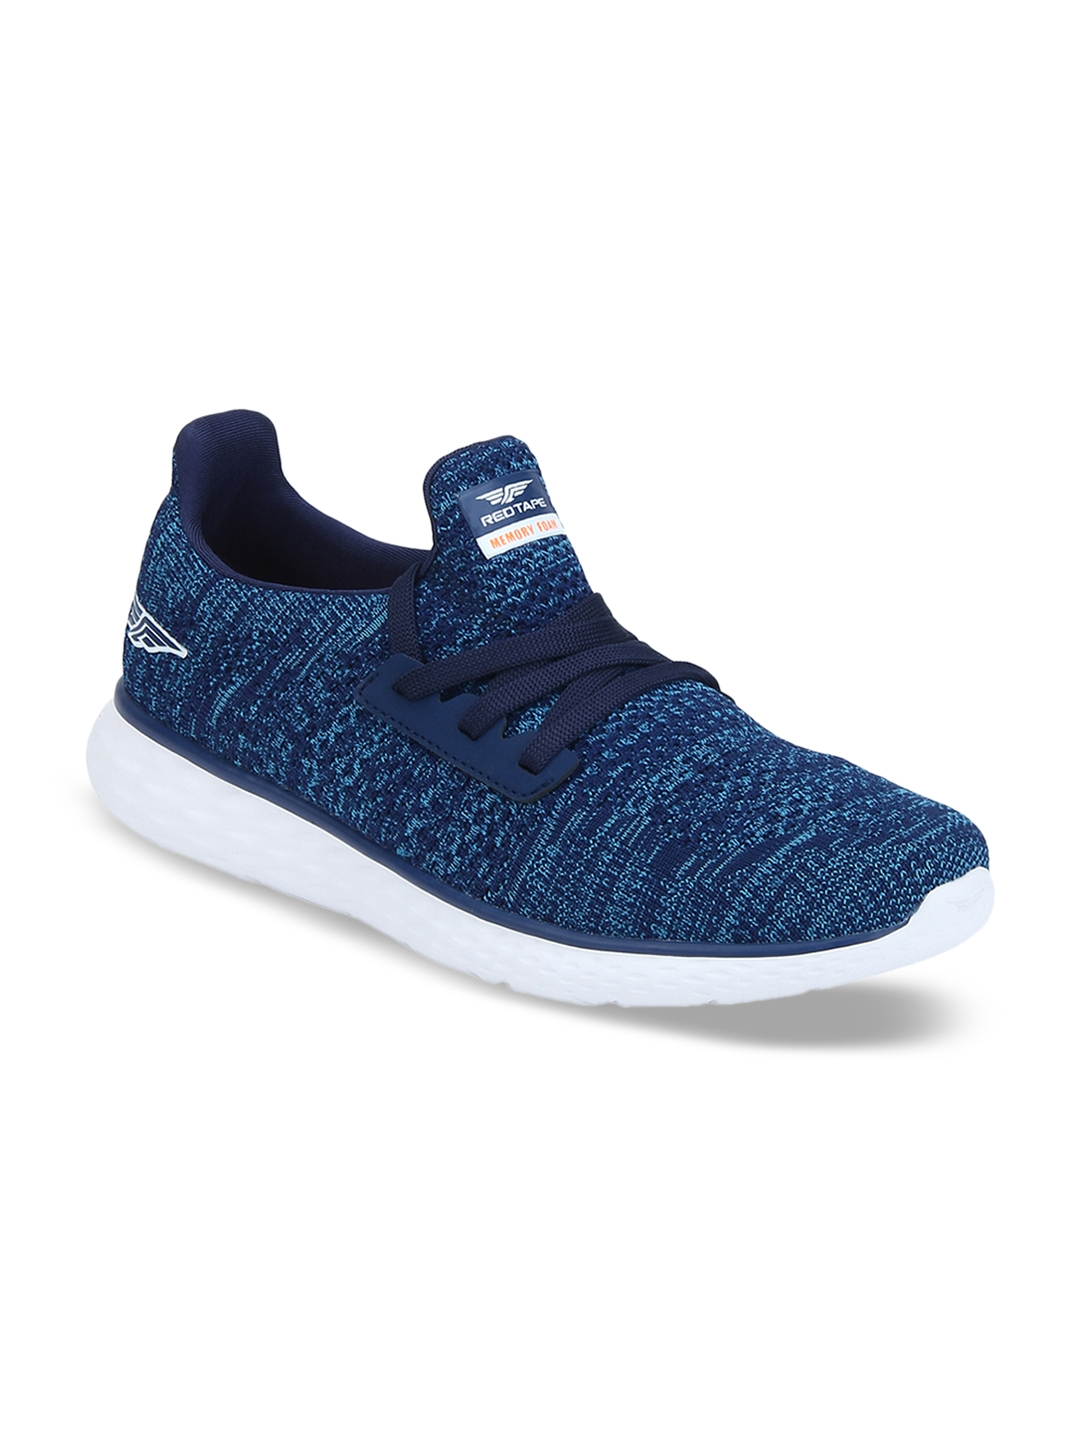 8b8ec6c40 Buy Red Tape Athleisure Sports Range Men Blue Running Shoes - Sports ...